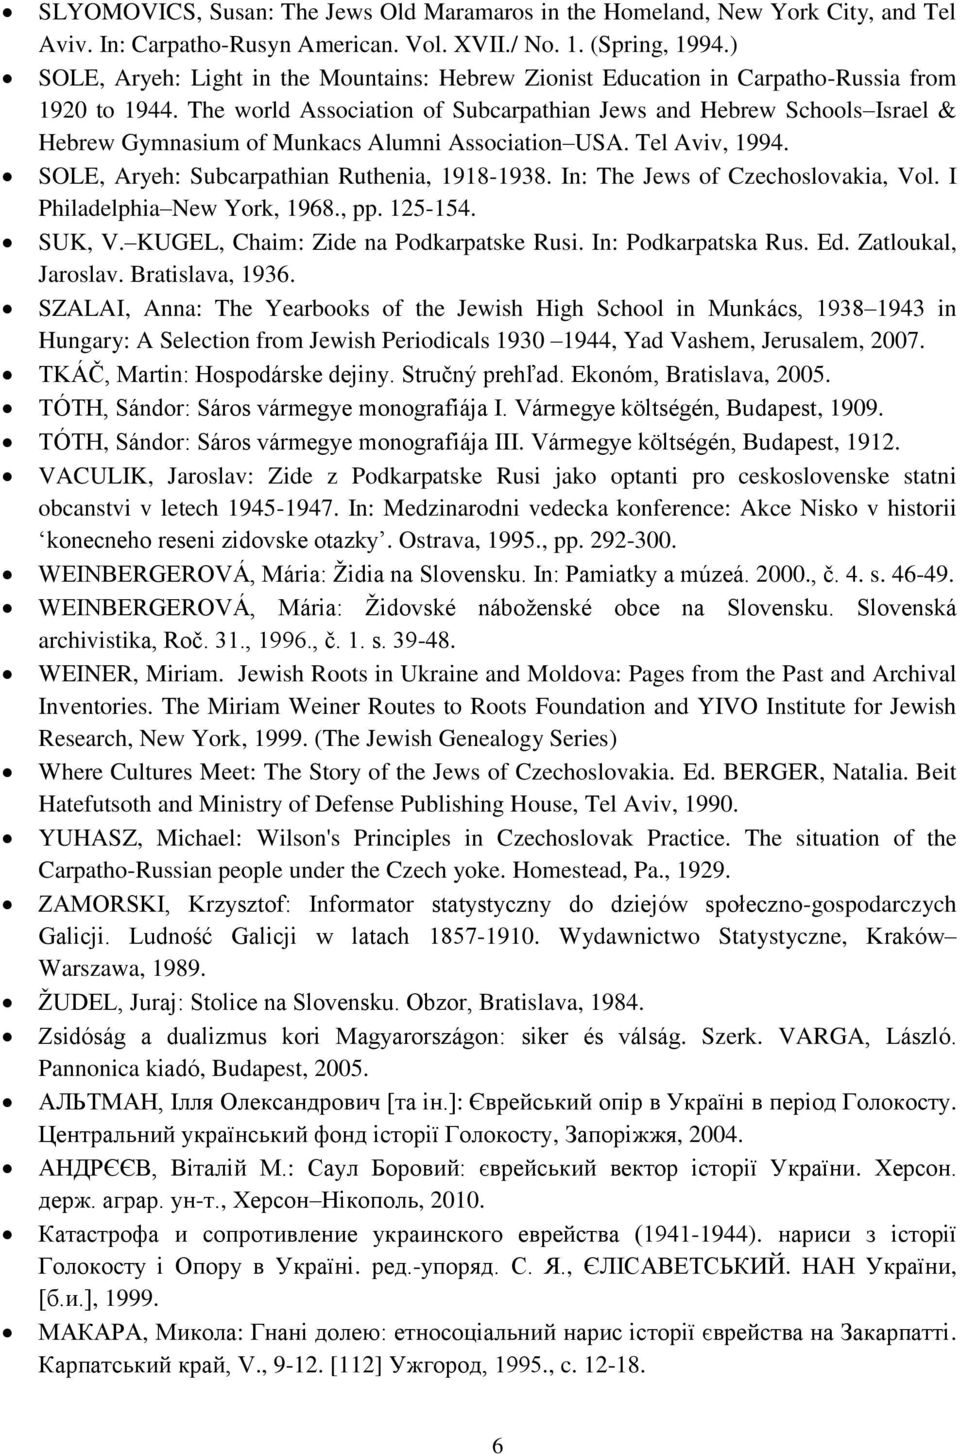 The world Association of Subcarpathian Jews and Hebrew Schools Israel & Hebrew Gymnasium of Munkacs Alumni Association USA. Tel Aviv, 1994. SOLE, Aryeh: Subcarpathian Ruthenia, 1918-1938.